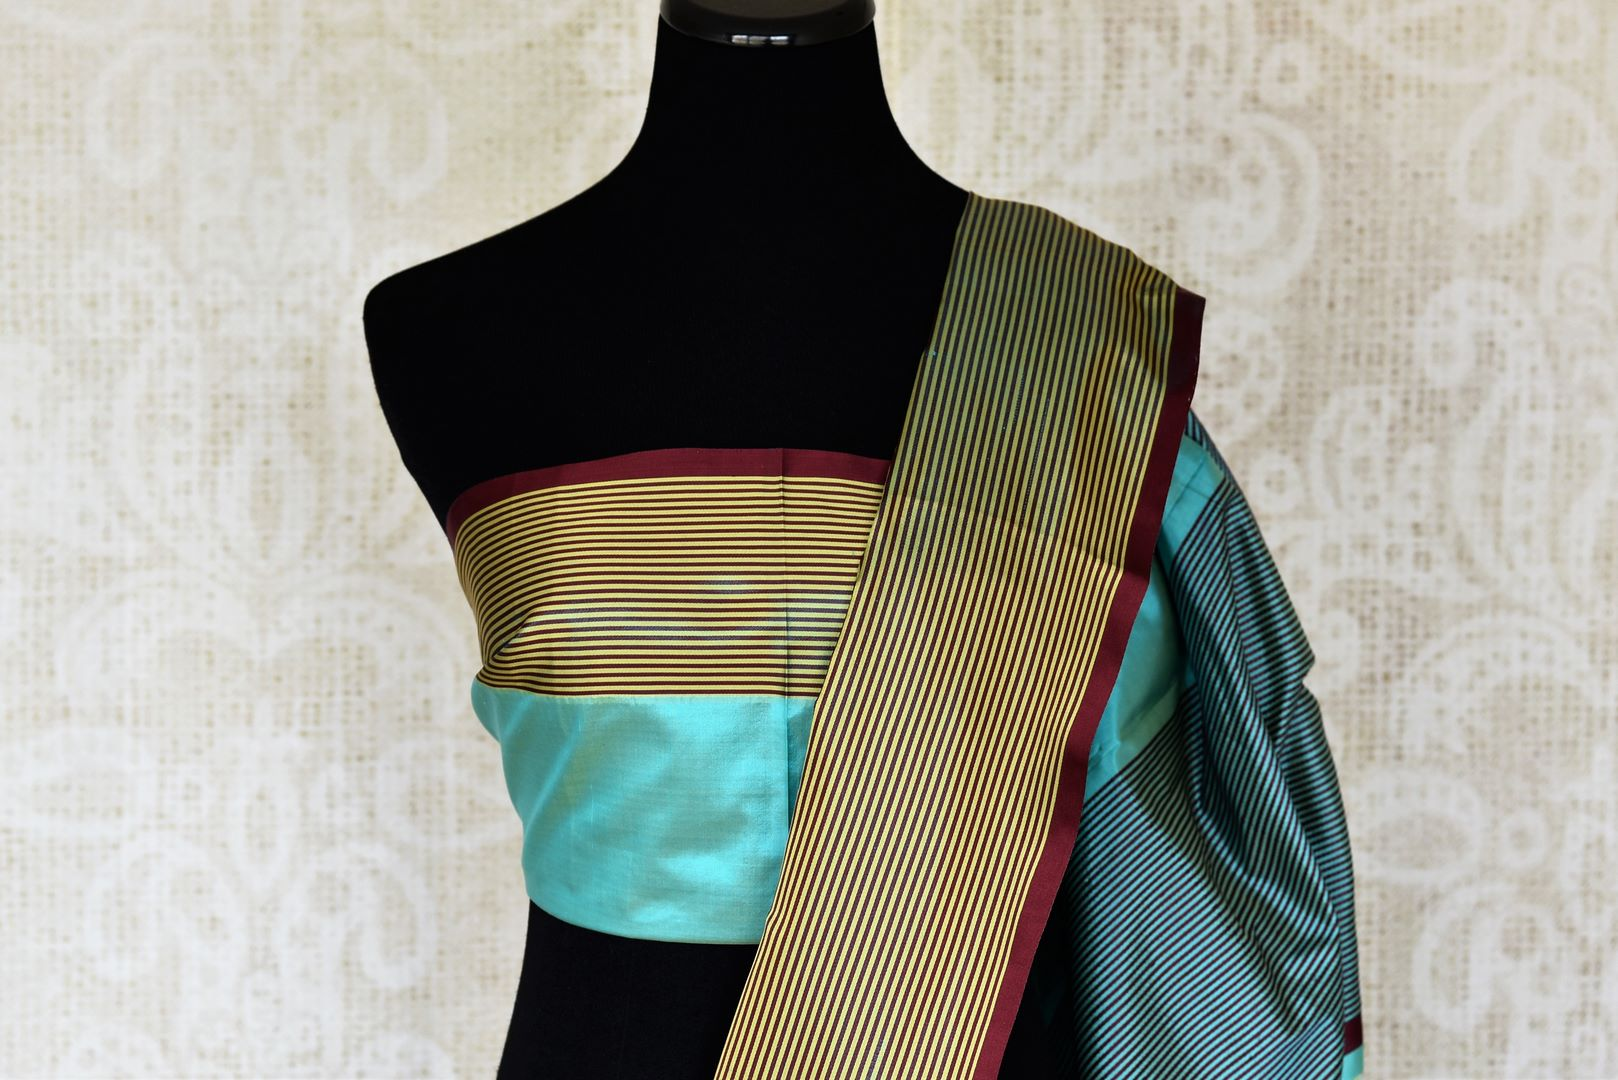 Shop turquoise blue Banarasi silk saree online in USA with striped border. Keep your wardrobe update with latest Indian handwoven sarees from Pure Elegance Indian fashion store in USA. Shop traditional Benarasi sarees, pure silk sarees for Indian women in USA from our online store.-blouse pallu